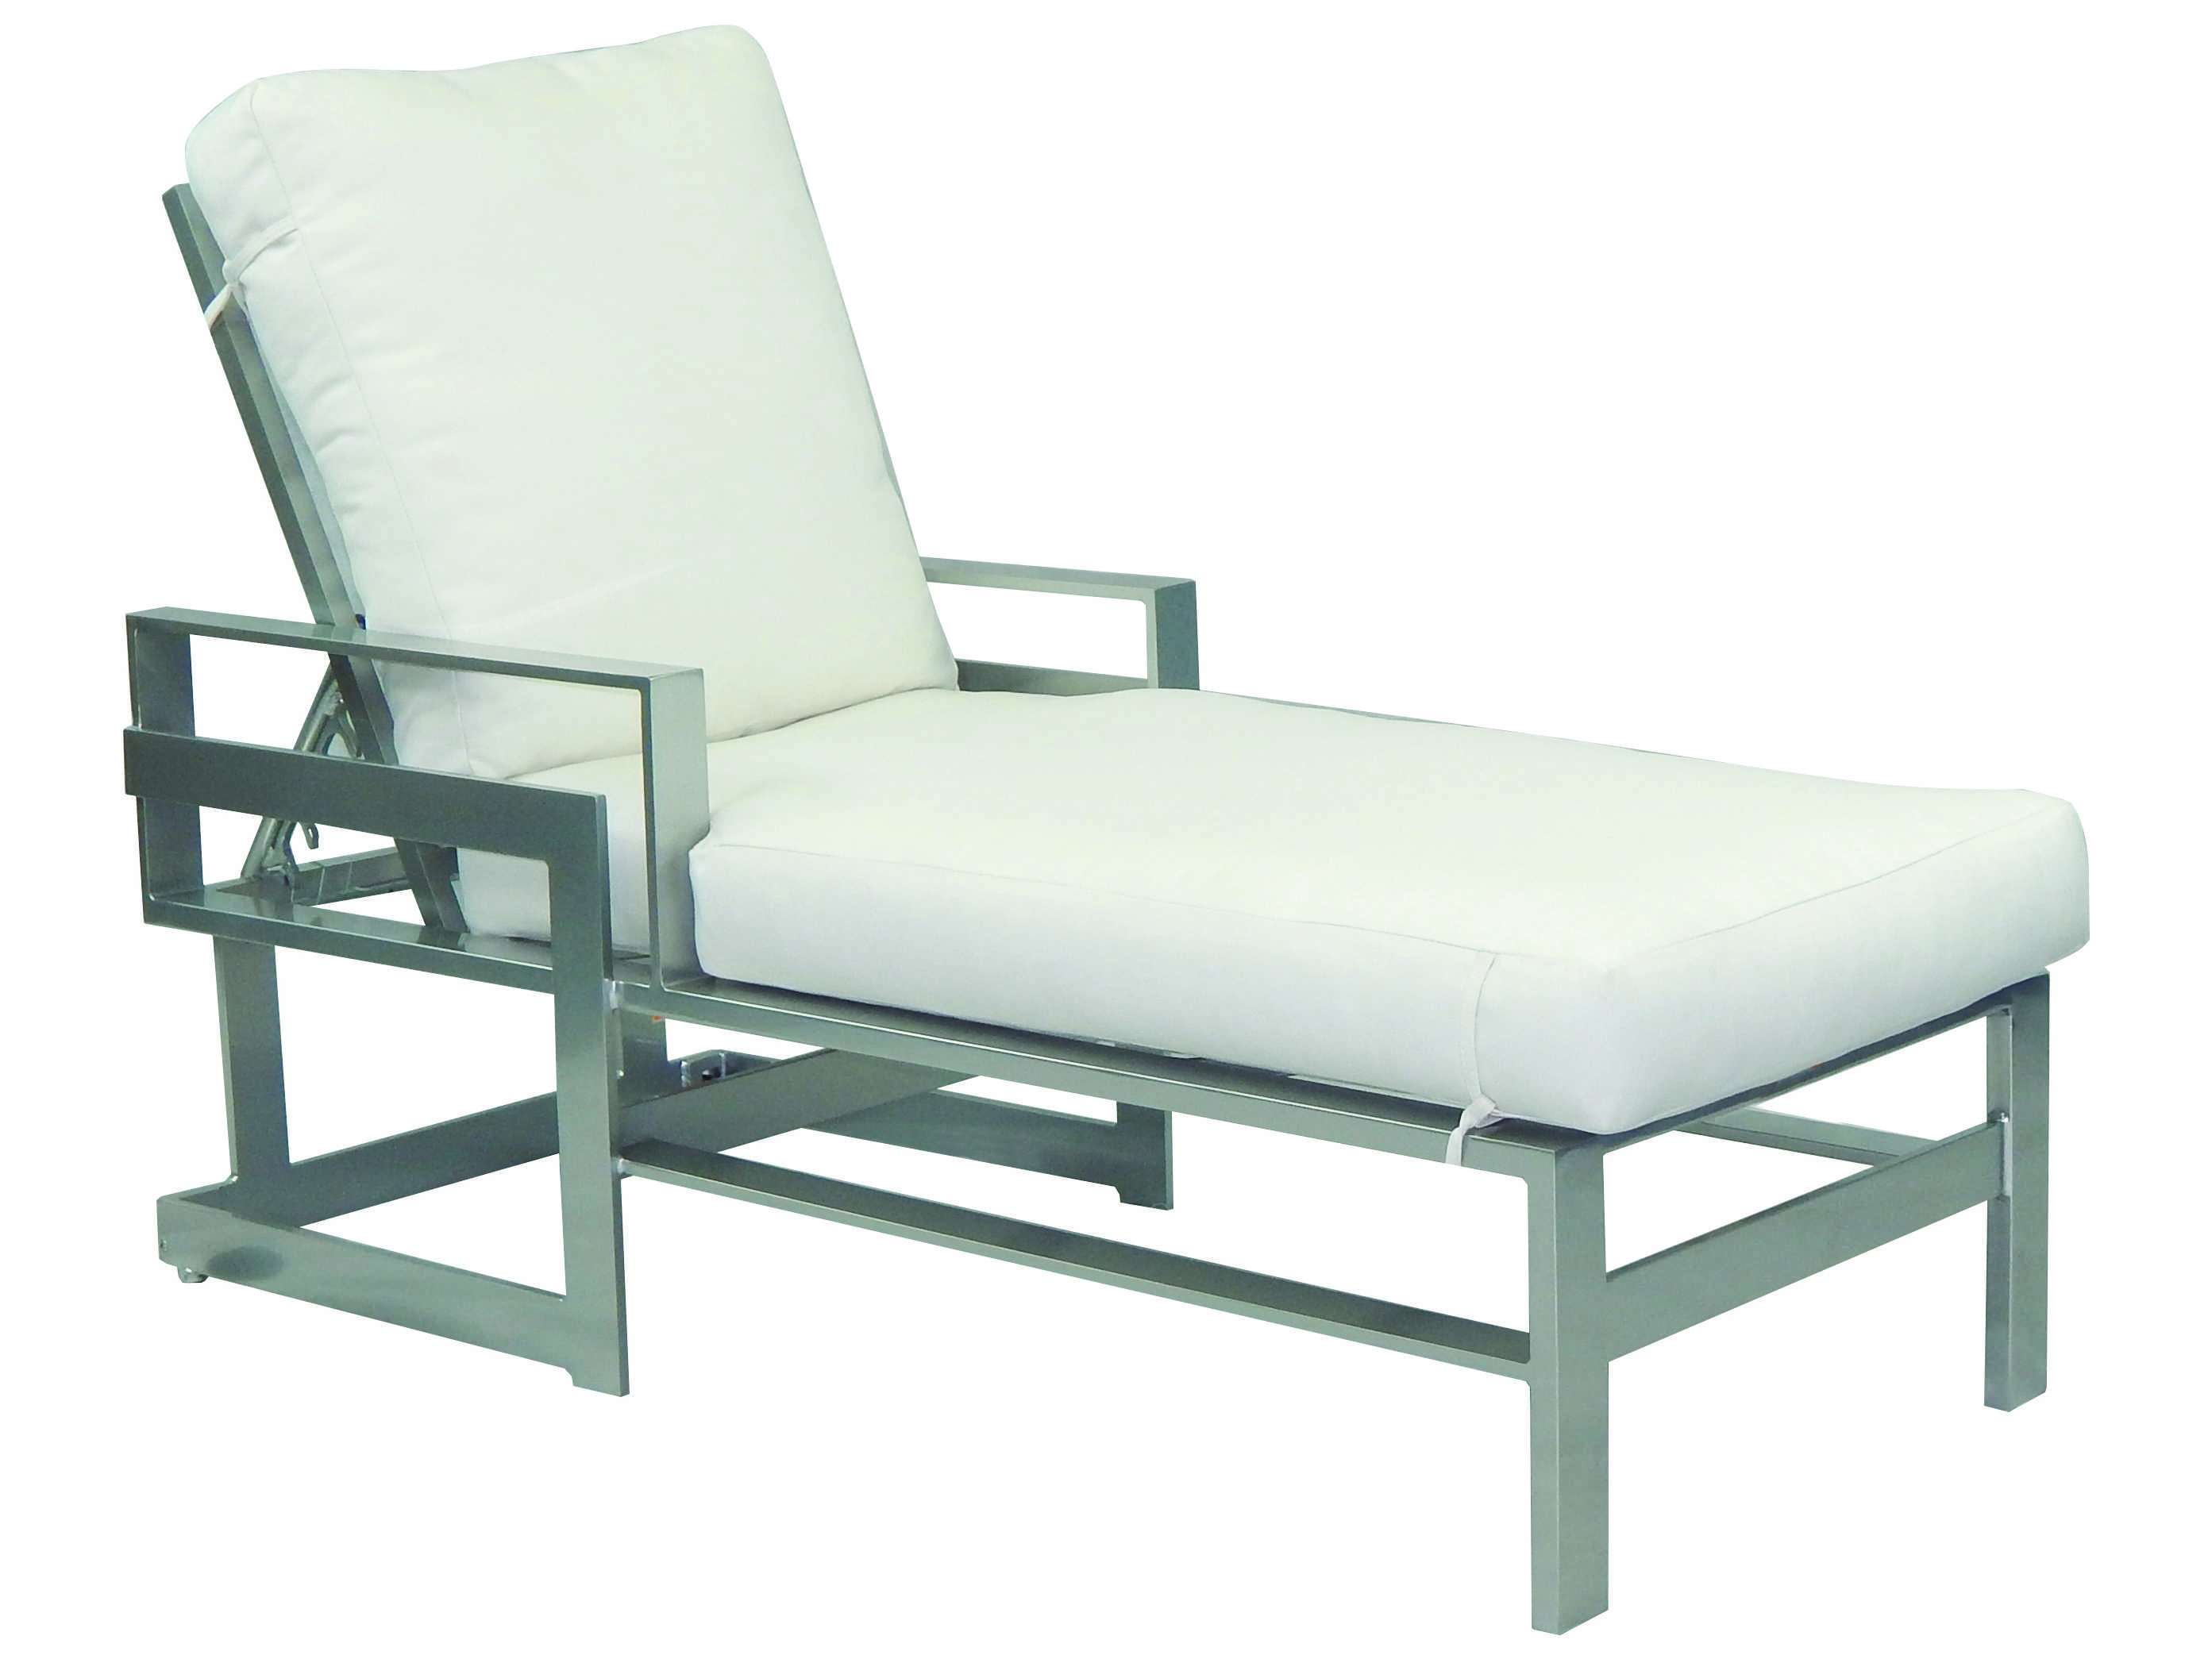 Castelle eclipse cushion dining cast aluminum adjustable for Aluminum chaise lounge with wheels